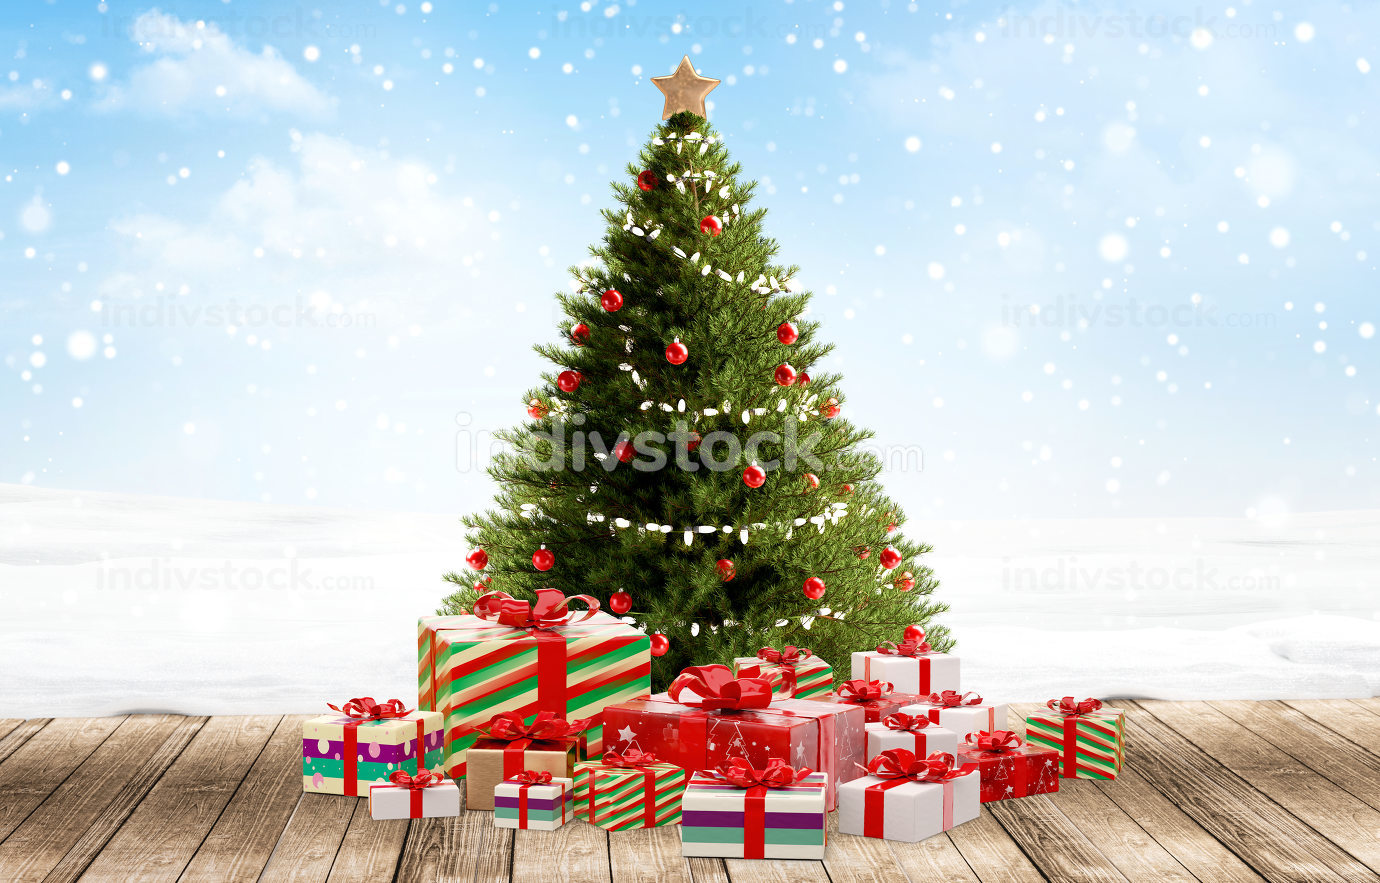 Christmas gifts festive packages 3d-illustration